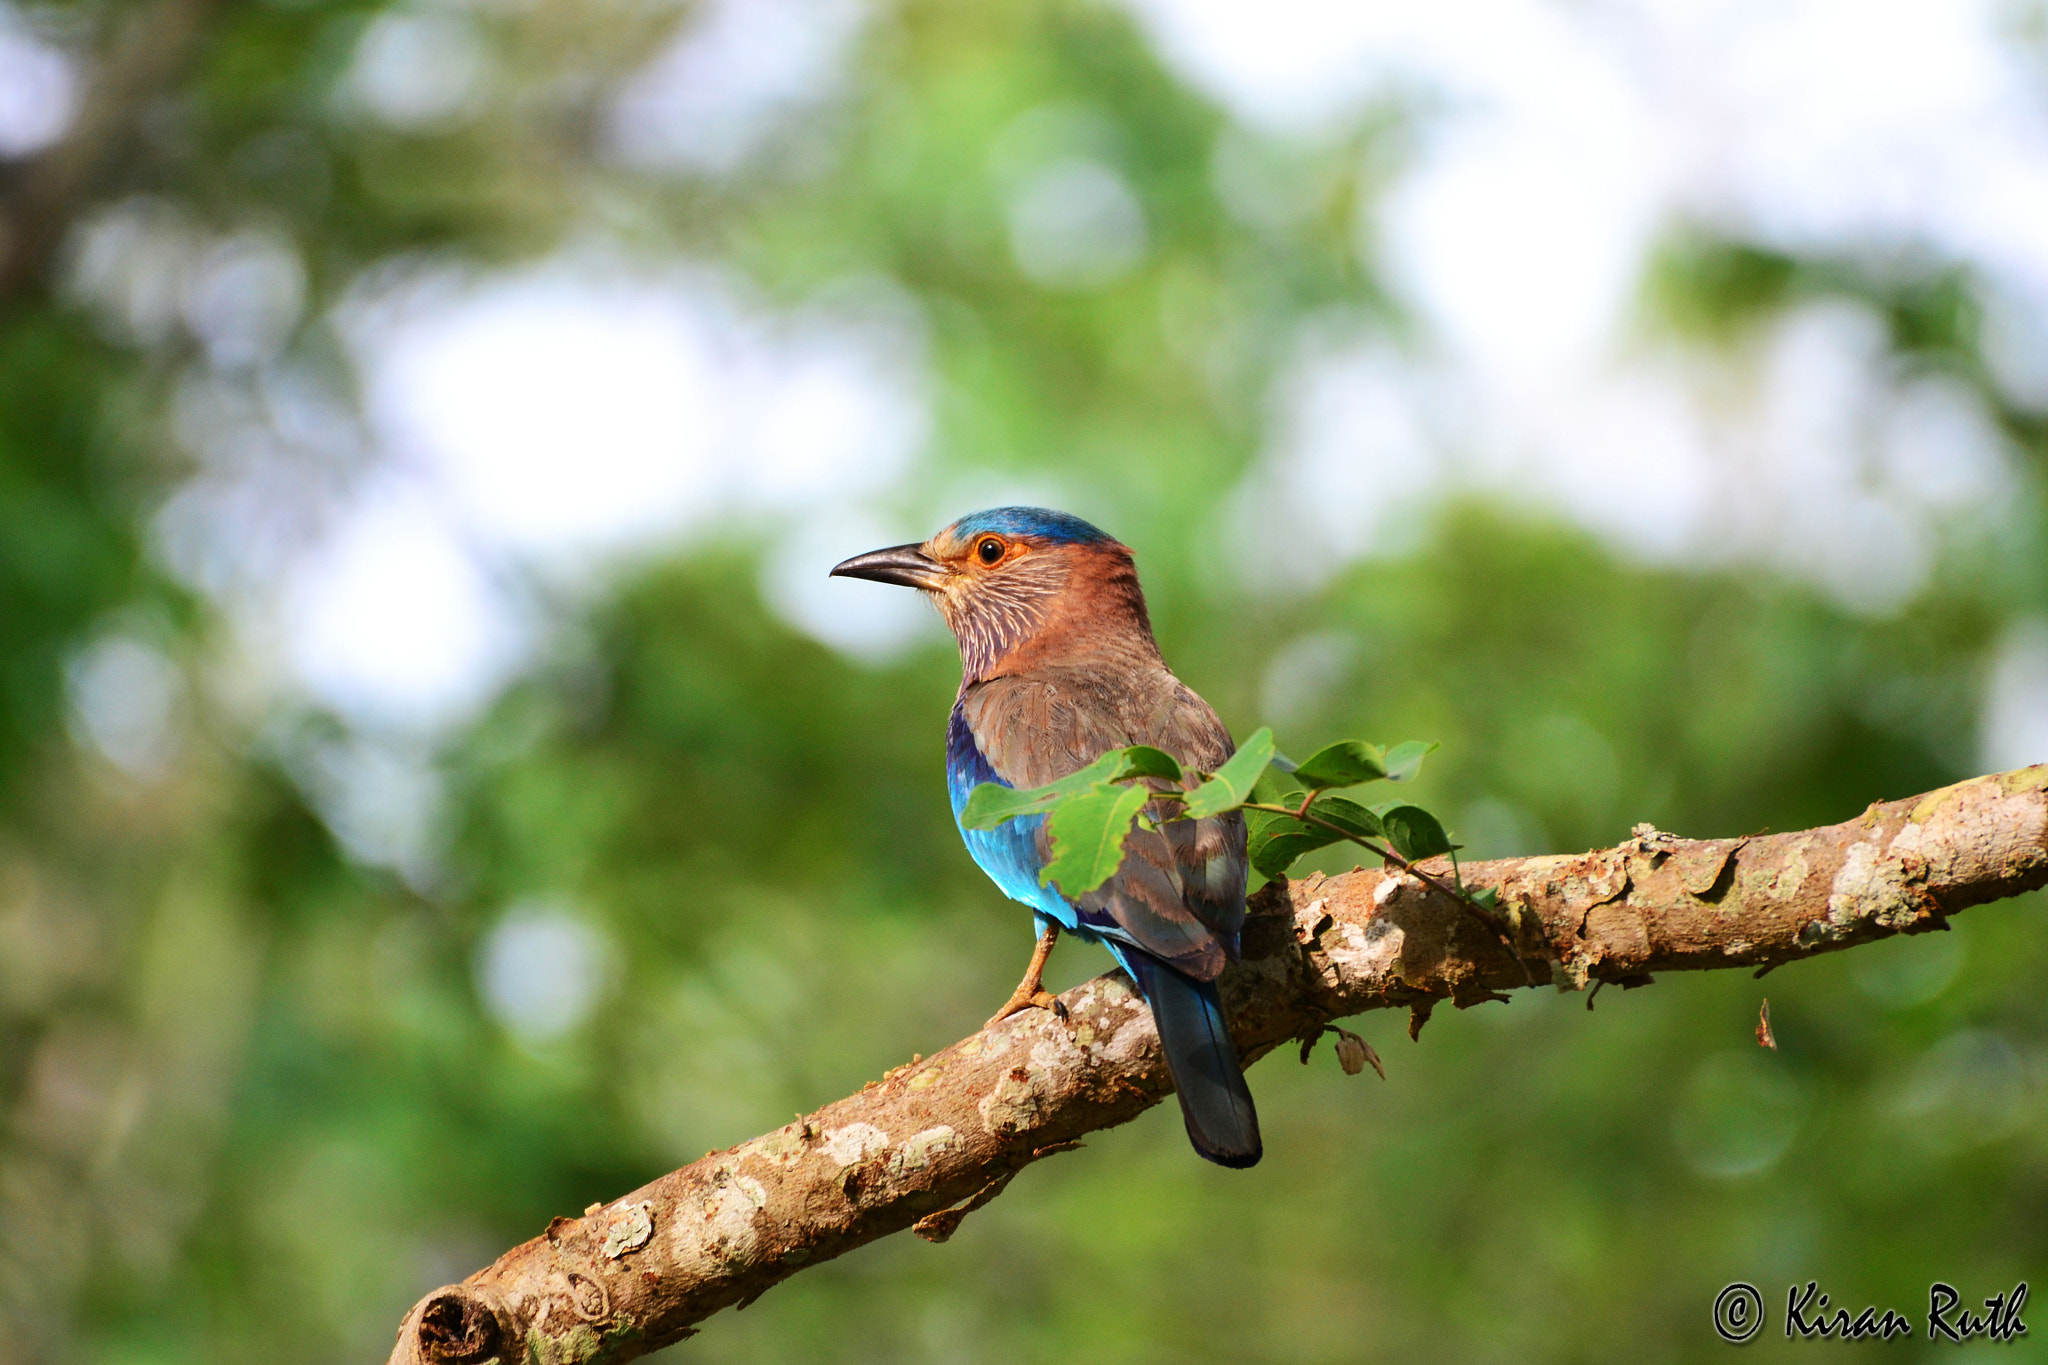 Photograph Indian Roller/ Blue jay by Kiran Ruth on 500px